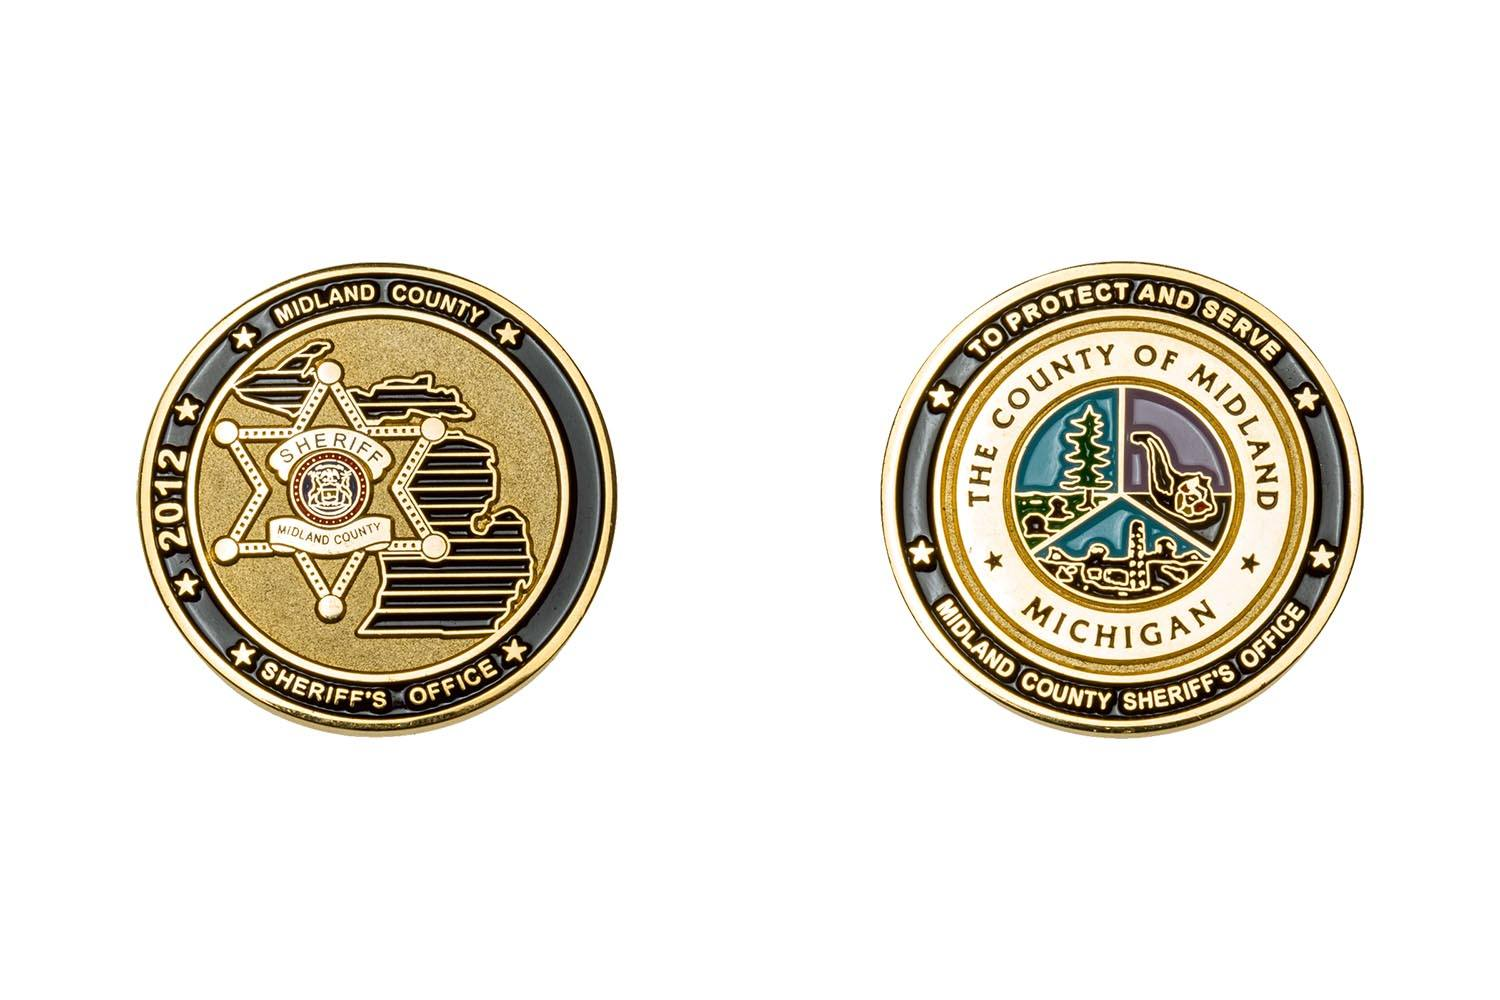 Metal sheriff's coins